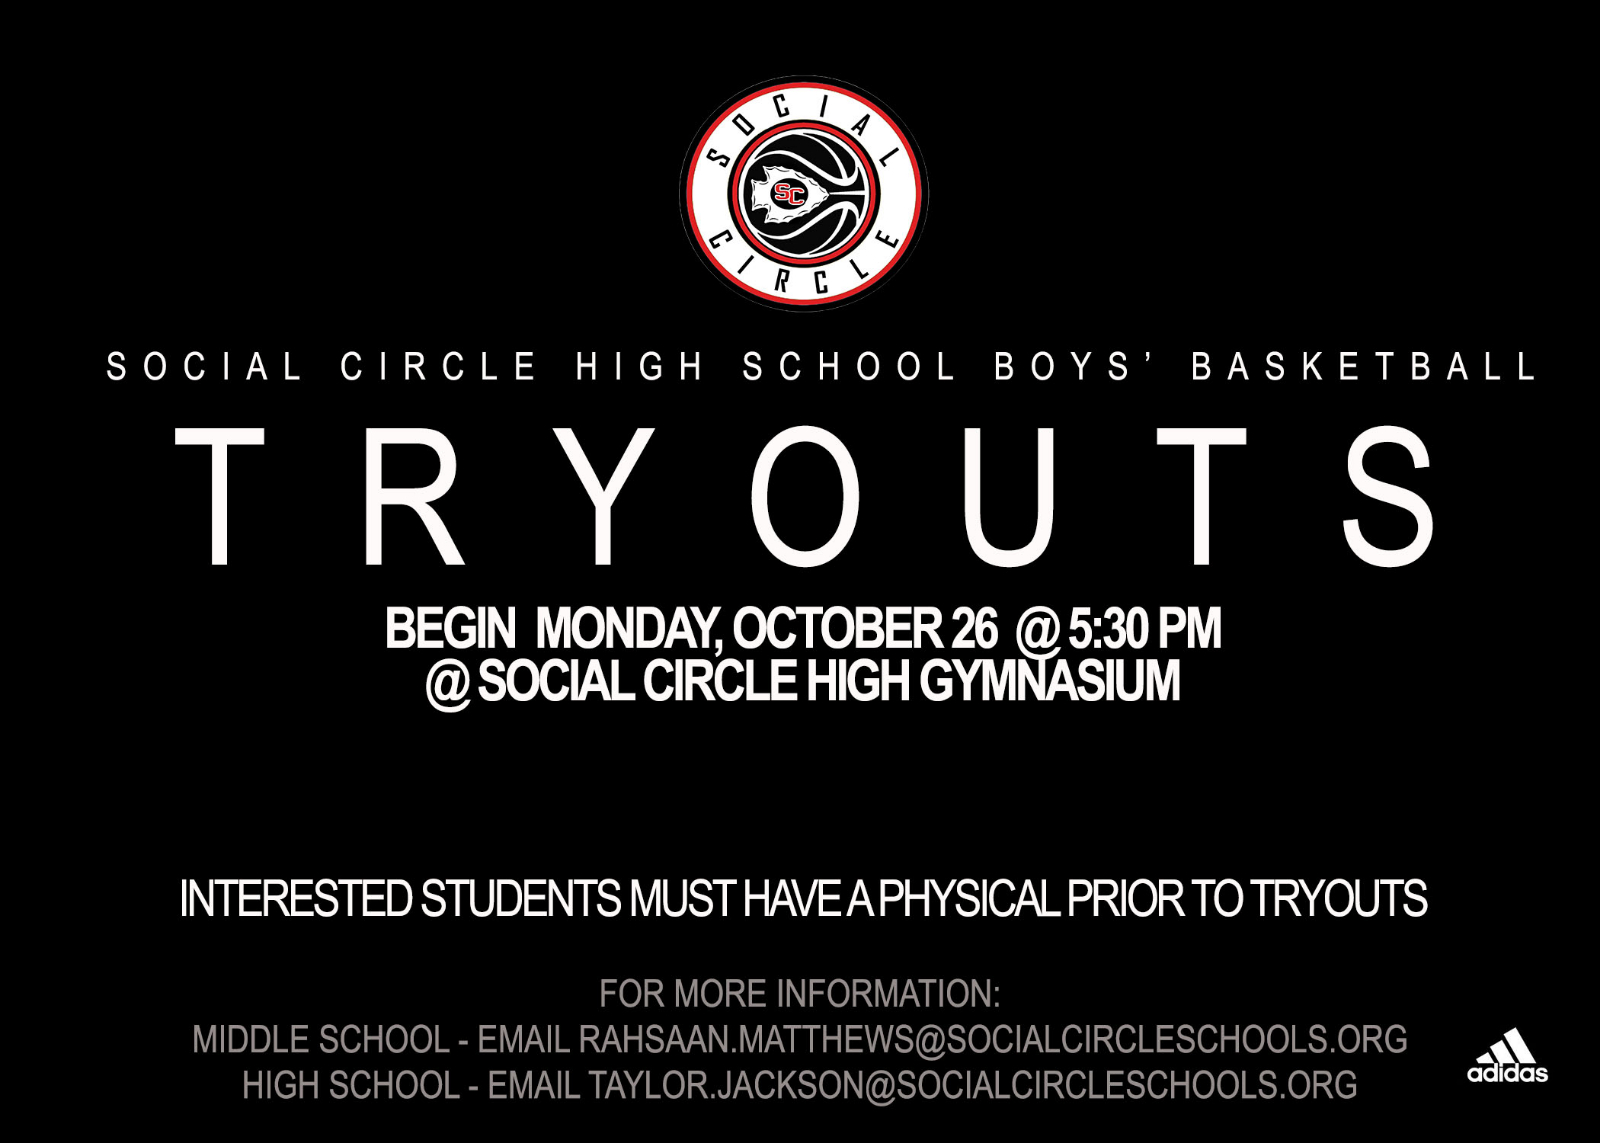 Social Circle High School Boys' Basketball Tryouts, October 26th